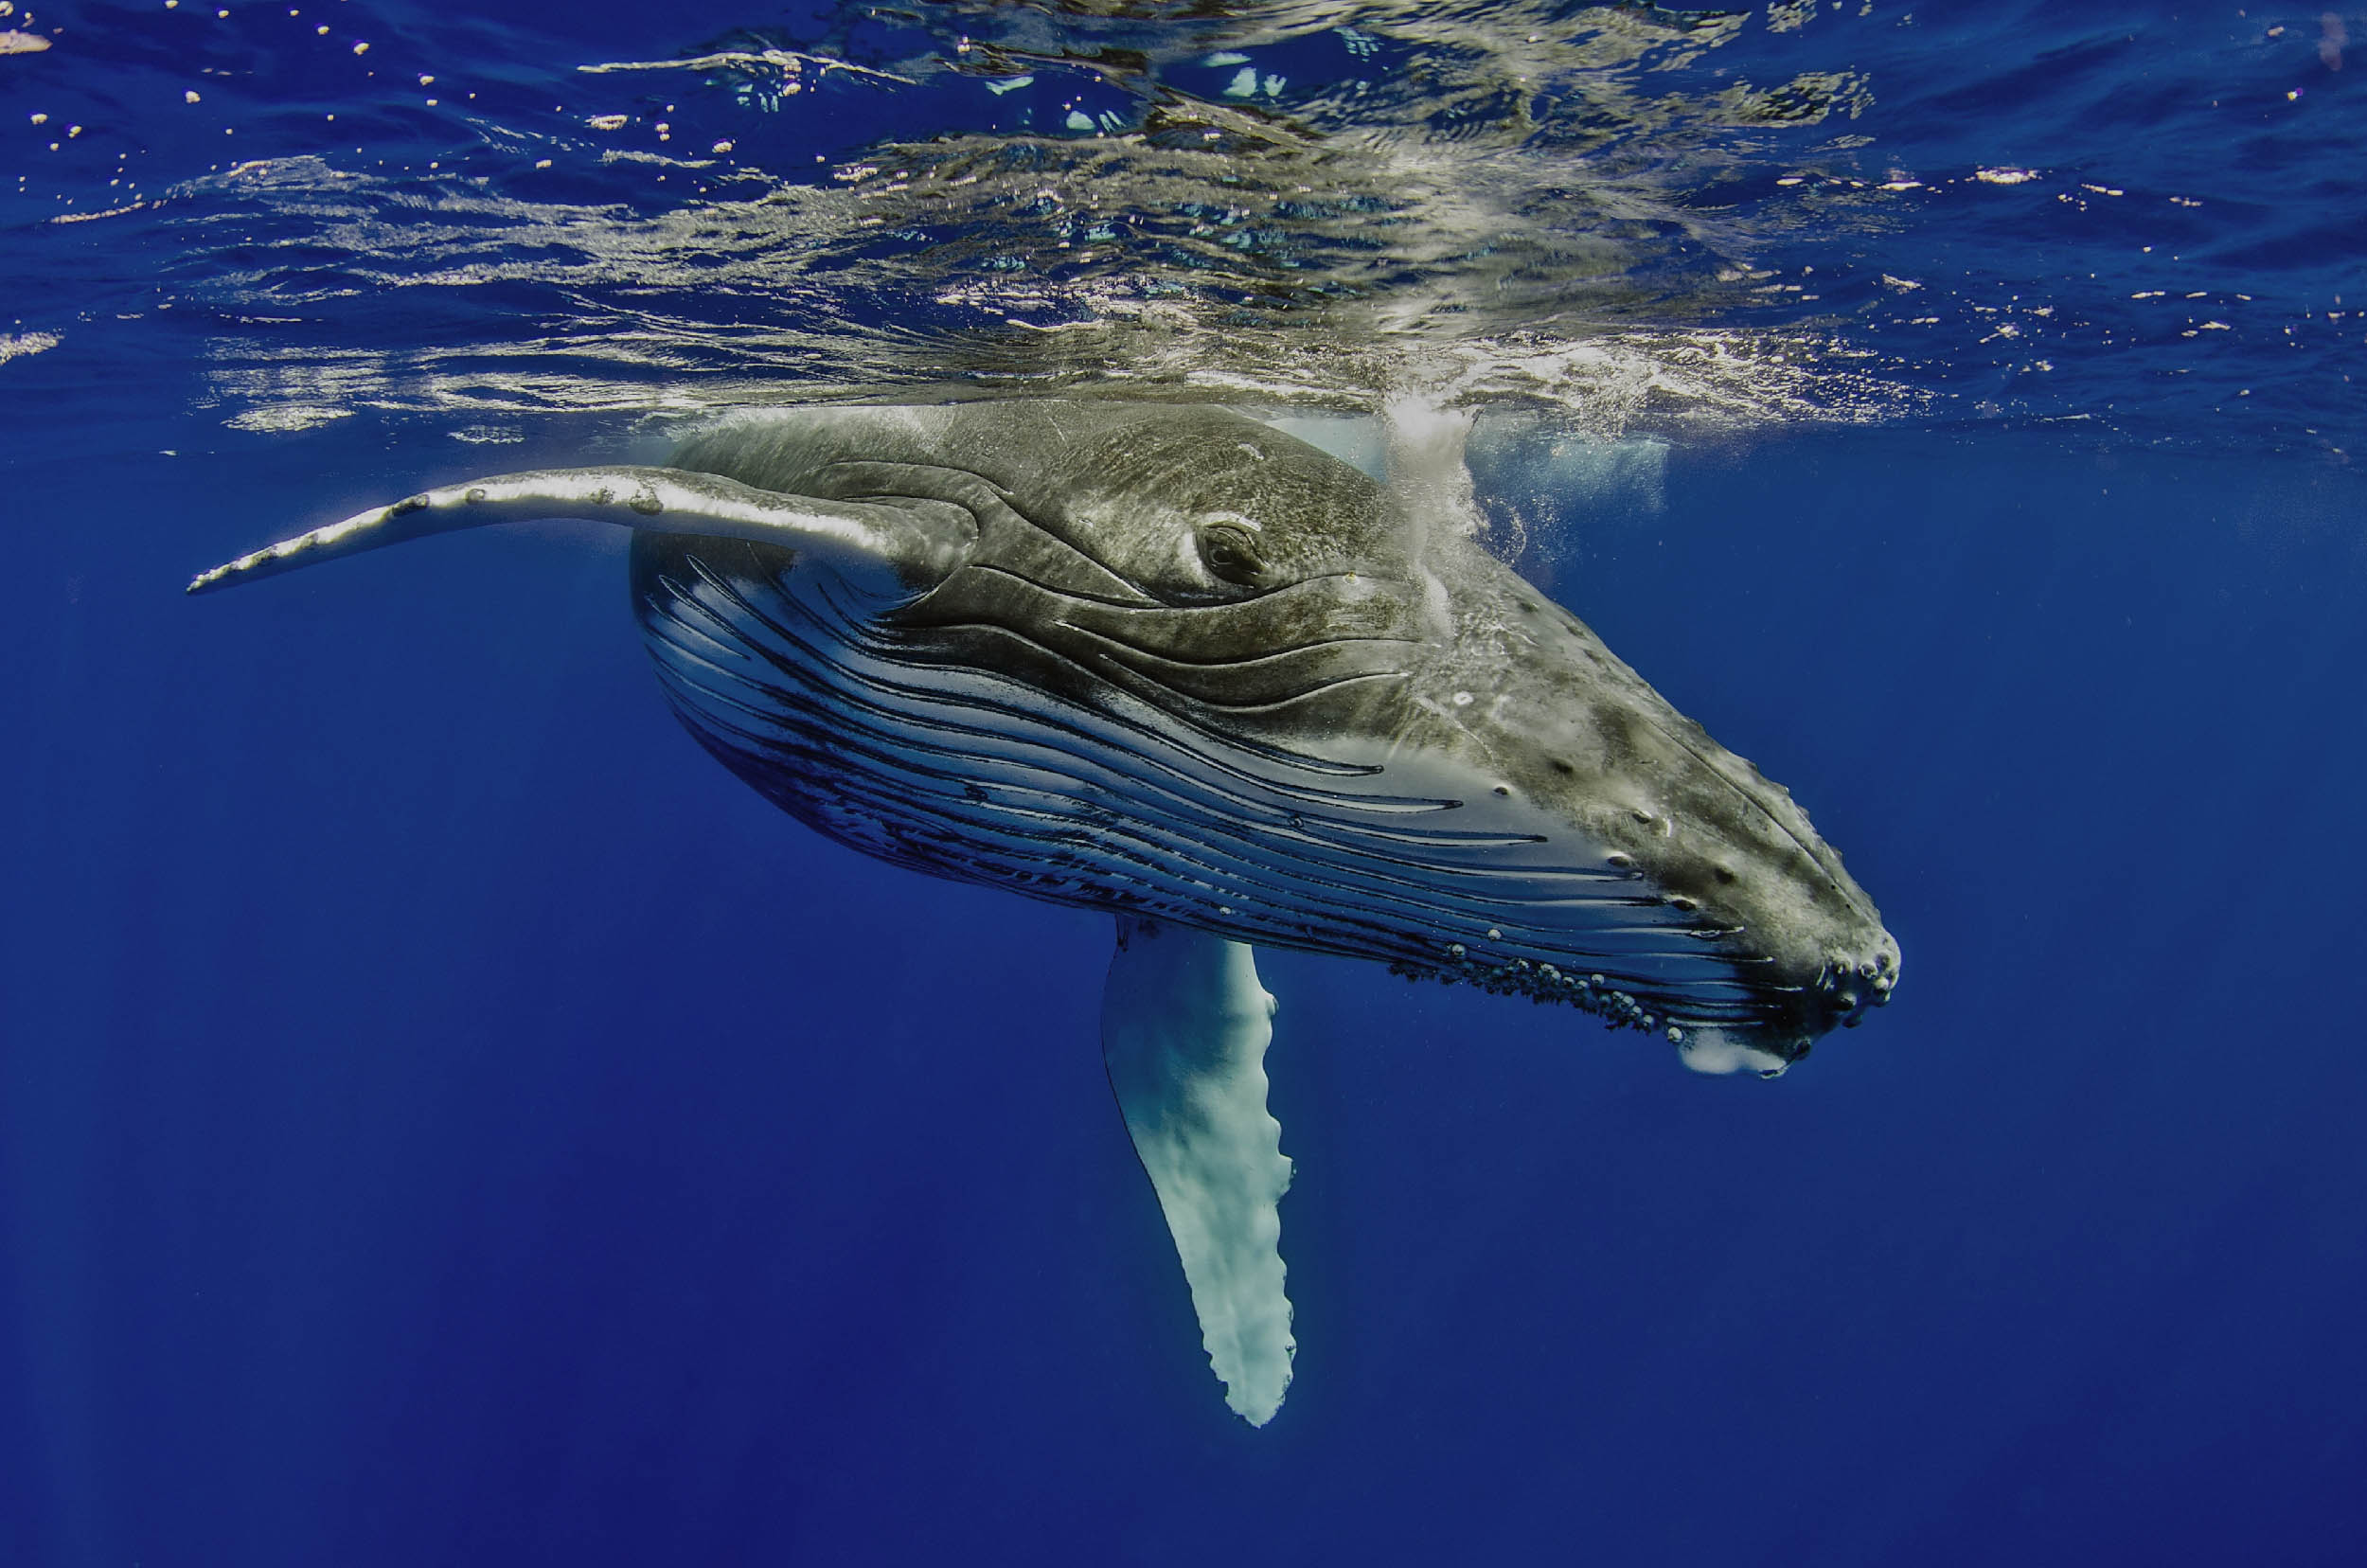 Humpback whale in clear blue water